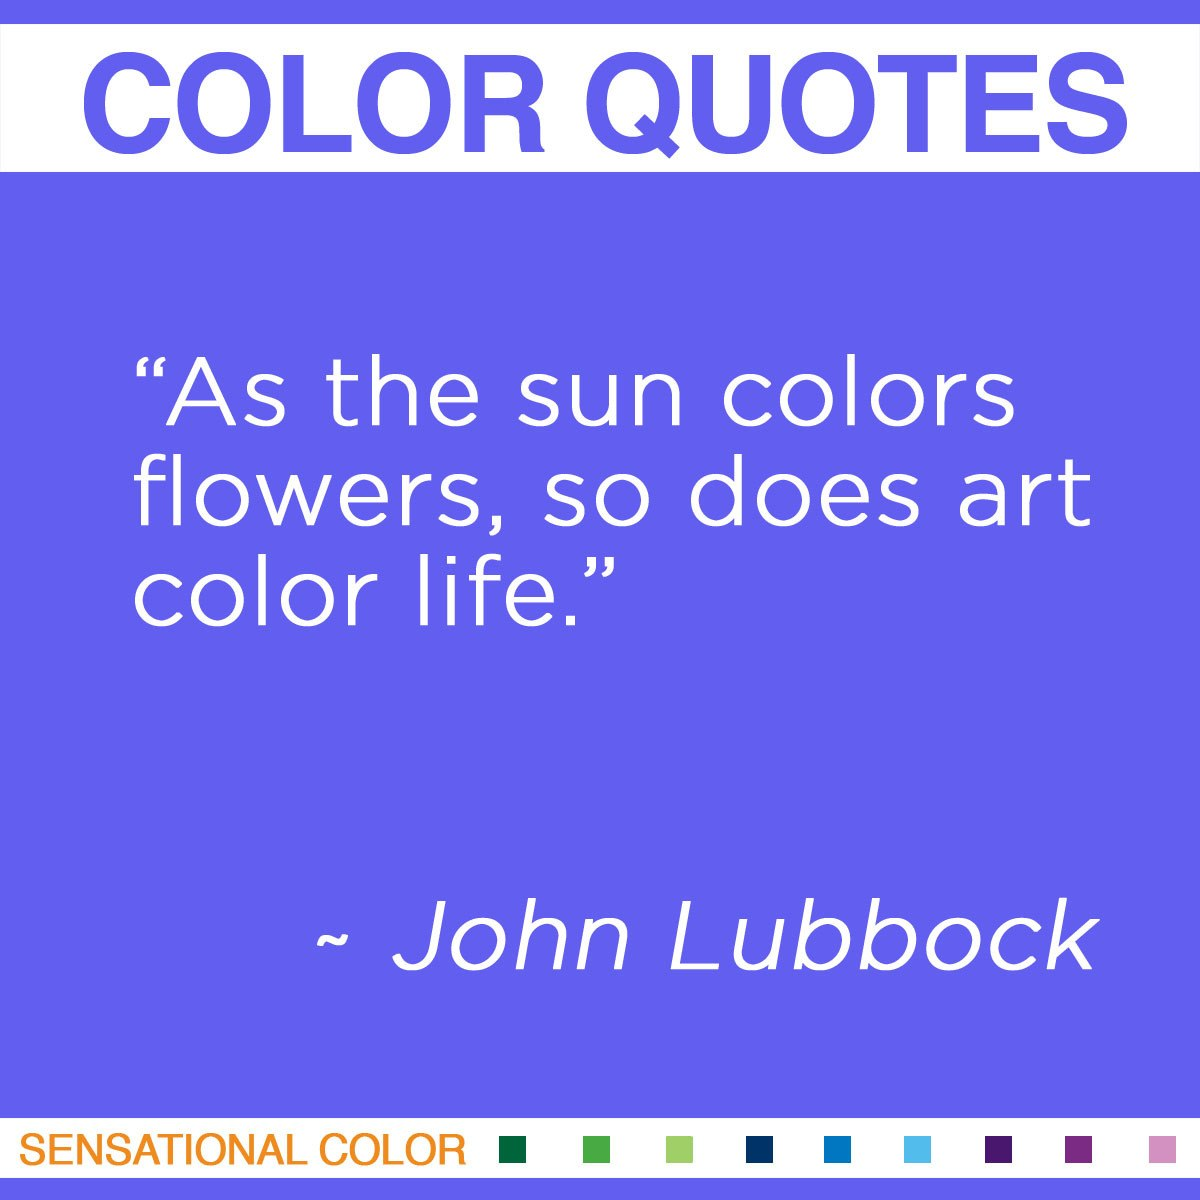 """""""As the sun colors flowers, so does art color life."""" - John Lubbock"""